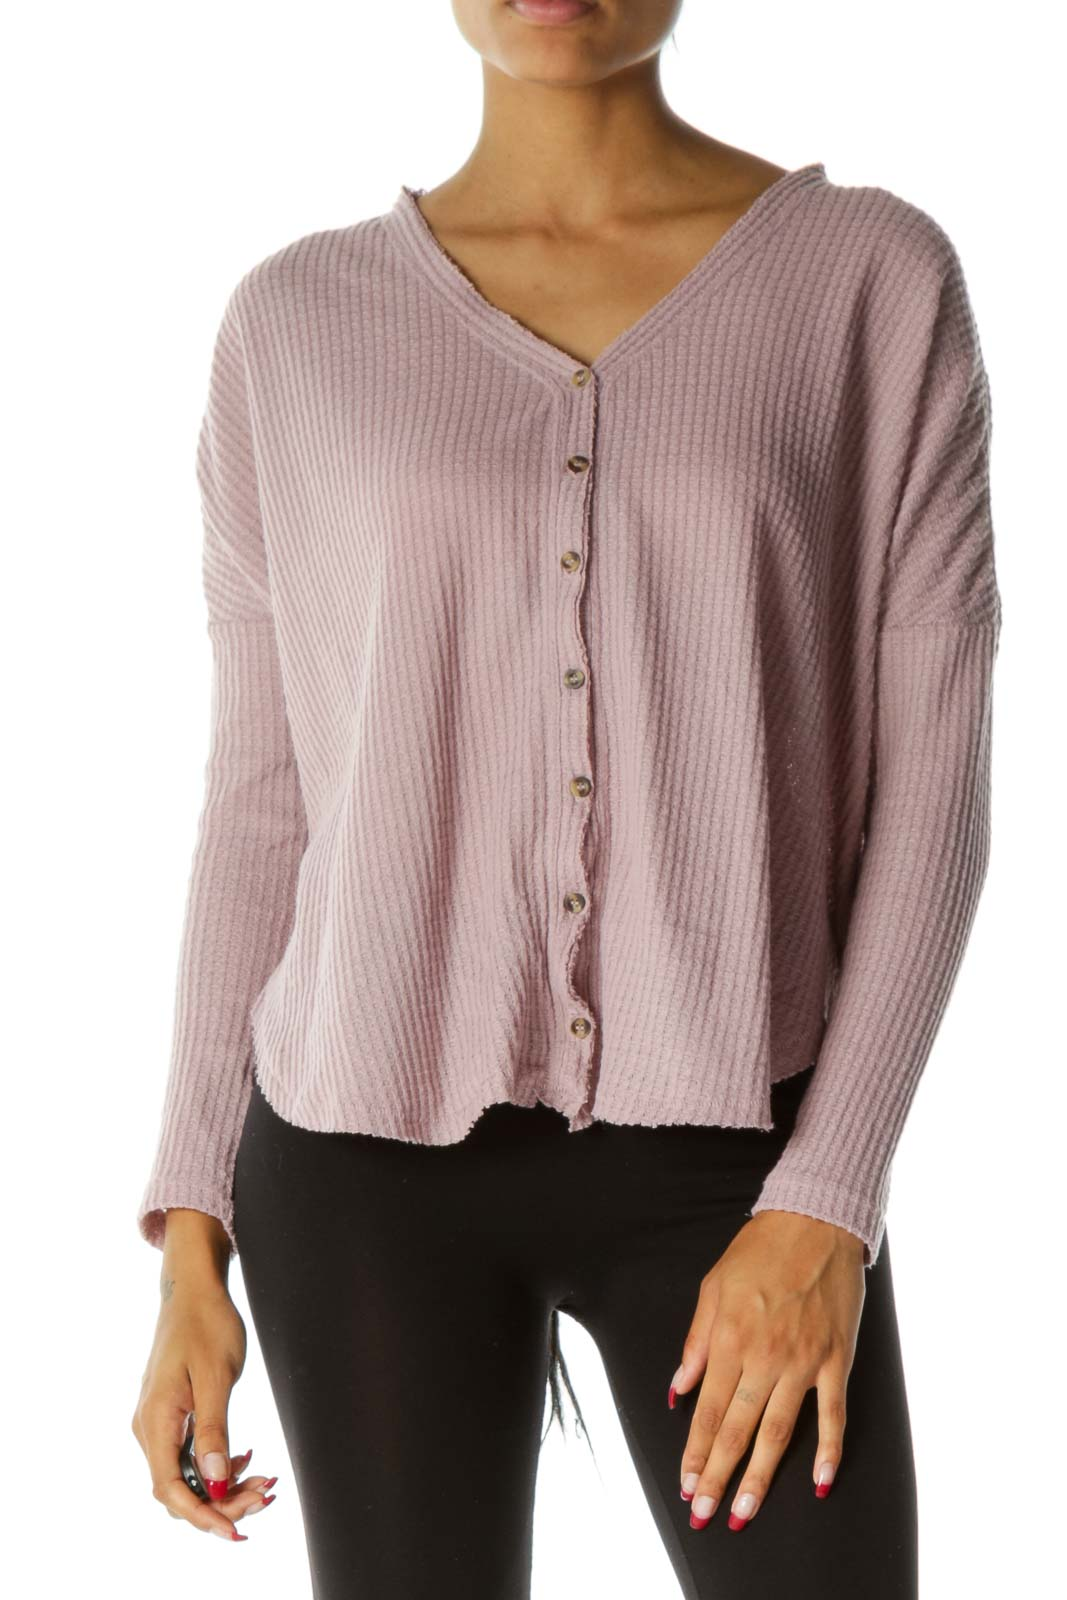 Light Pink Textured Knit Buttoned Long Sleeve Top